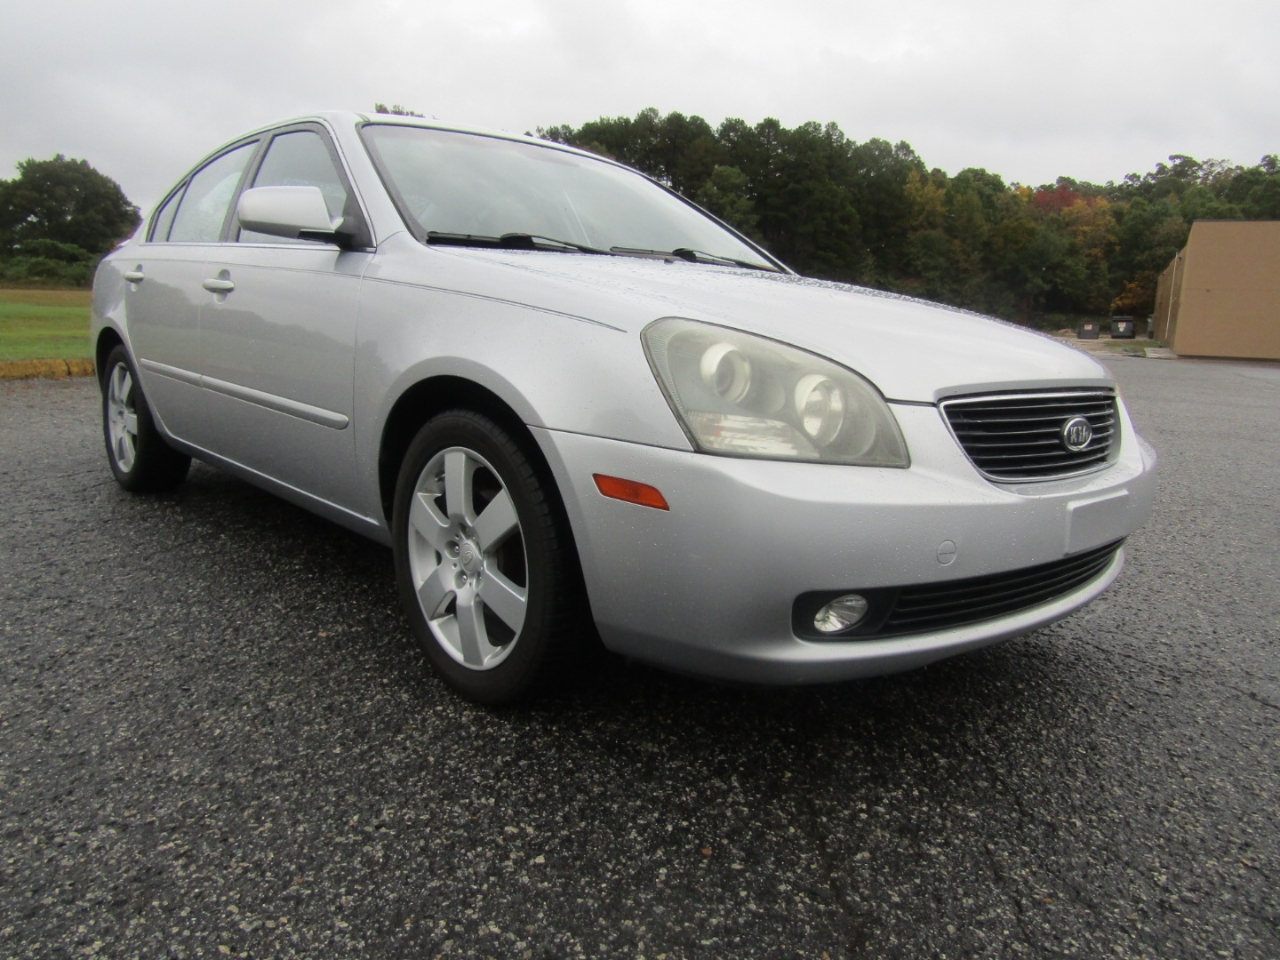 2006 Kia Optima EX V6